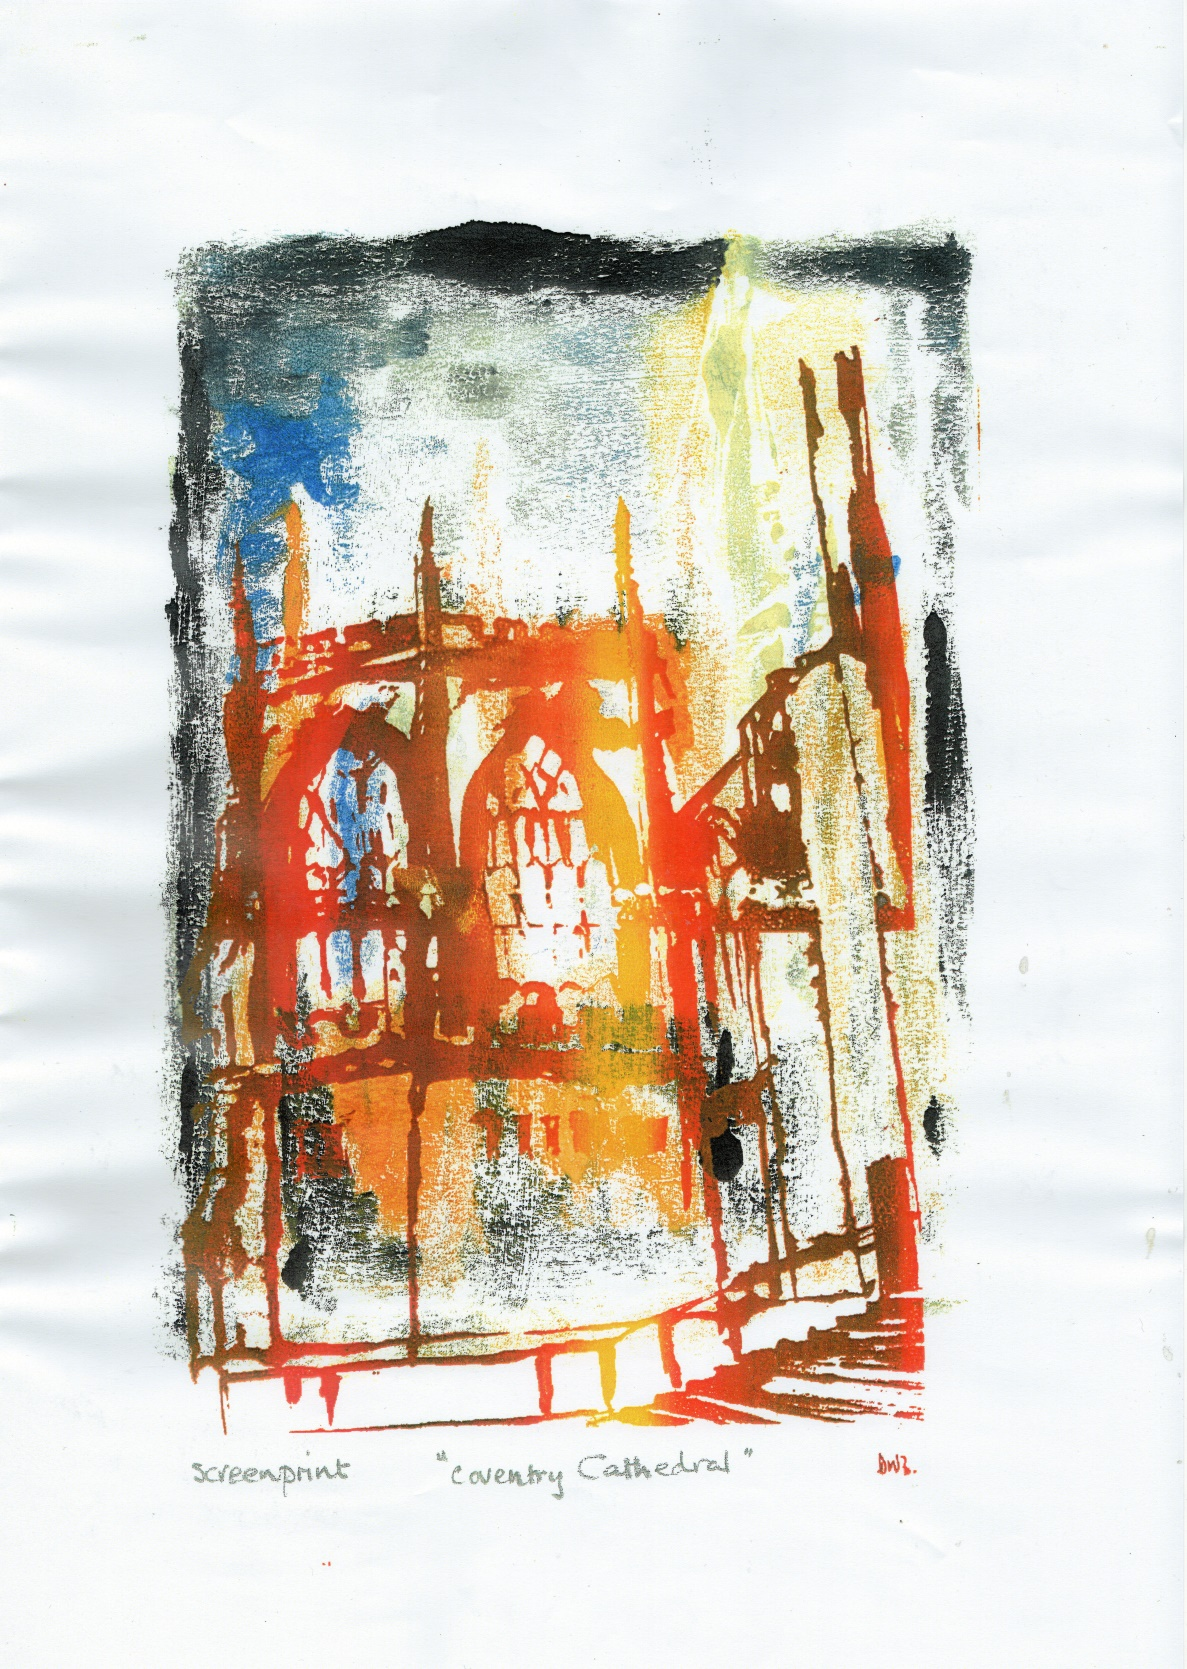 Dean William Birch, Coventry Cathedral, Screenprint